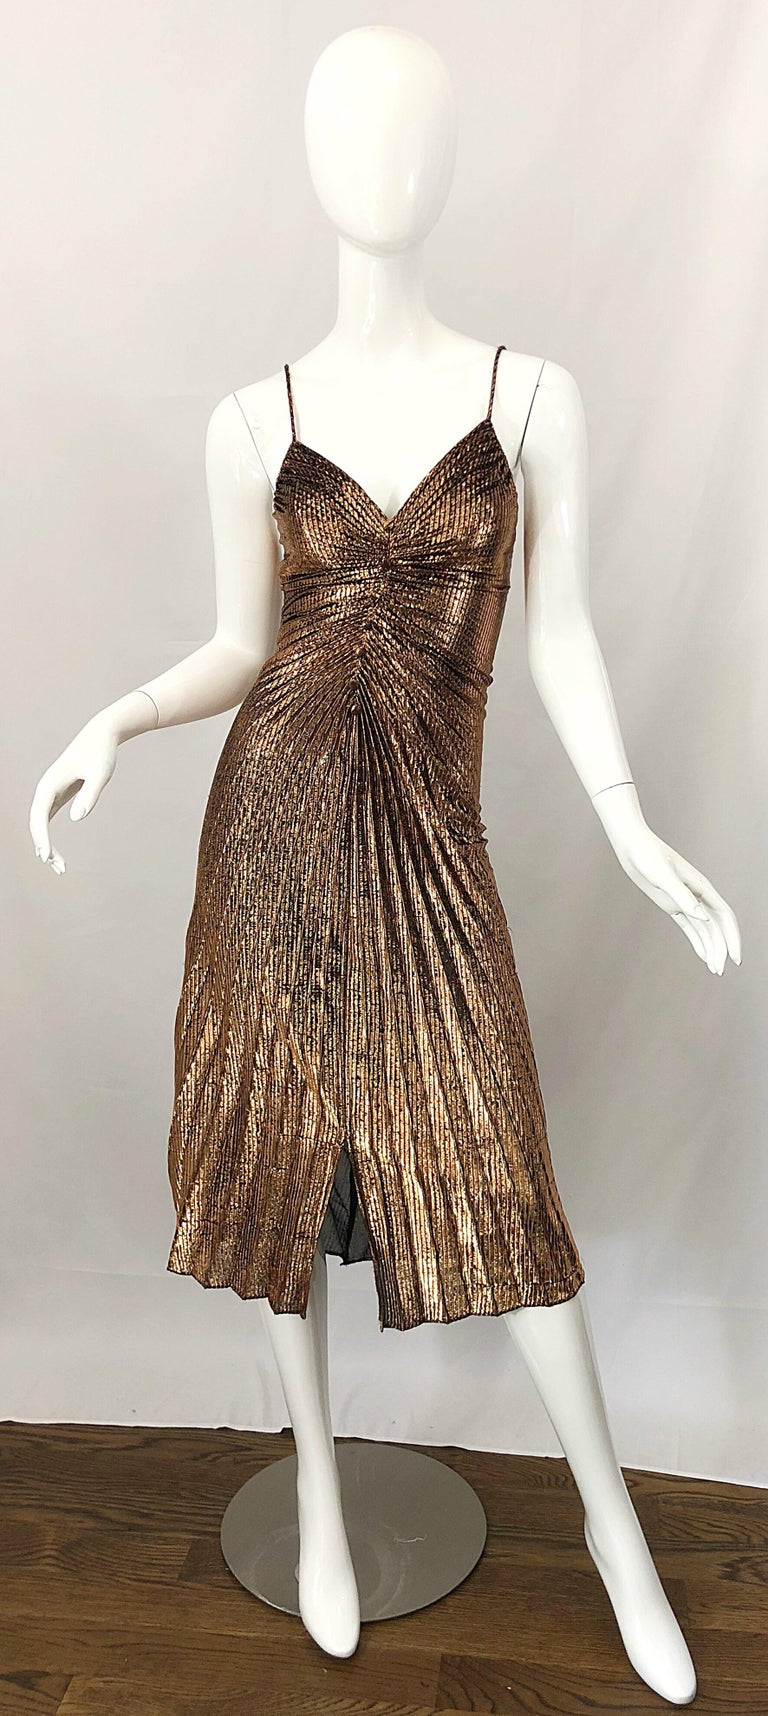 Sexy 1970s SAMIR gold / bronze metallic pleated slinky disco dress! I just love these dressed, and they are getting harder and harder to find, and always sell almost immediately! Features a flattering pleated body, with mock fabric covered buttons